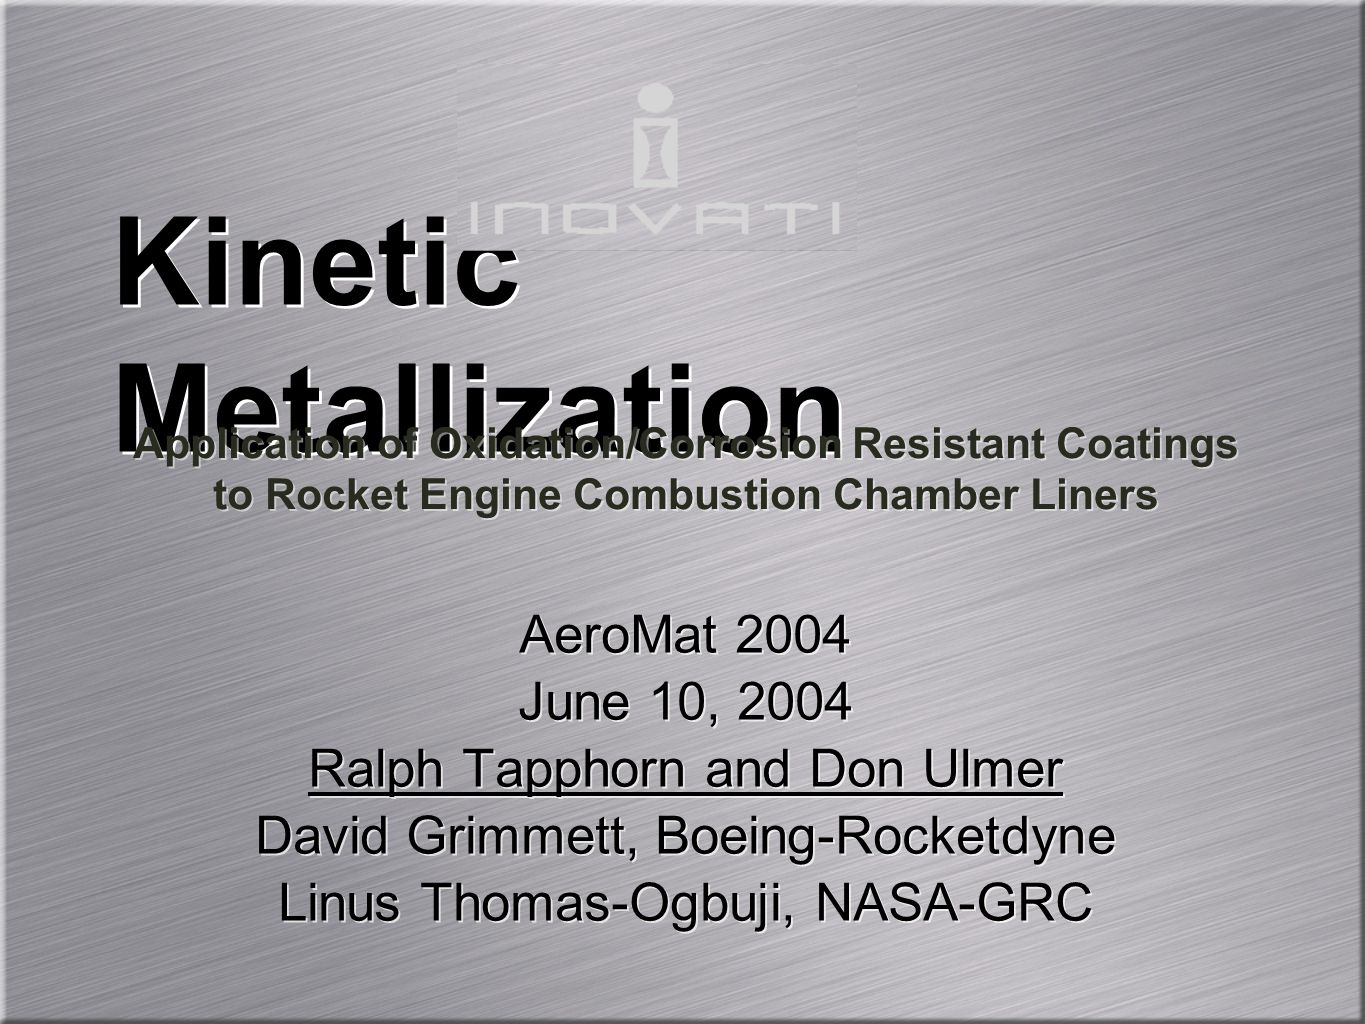 AeroMat 2004 June 10, 2004 Ralph Tapphorn and Don Ulmer David Grimmett, Boeing-Rocketdyne Linus Thomas-Ogbuji, NASA-GRC AeroMat 2004 June 10, 2004 Ralph Tapphorn and Don Ulmer David Grimmett, Boeing-Rocketdyne Linus Thomas-Ogbuji, NASA-GRC Kinetic Metallization Application of Oxidation/Corrosion Resistant Coatings to Rocket Engine Combustion Chamber Liners Application of Oxidation/Corrosion Resistant Coatings to Rocket Engine Combustion Chamber Liners